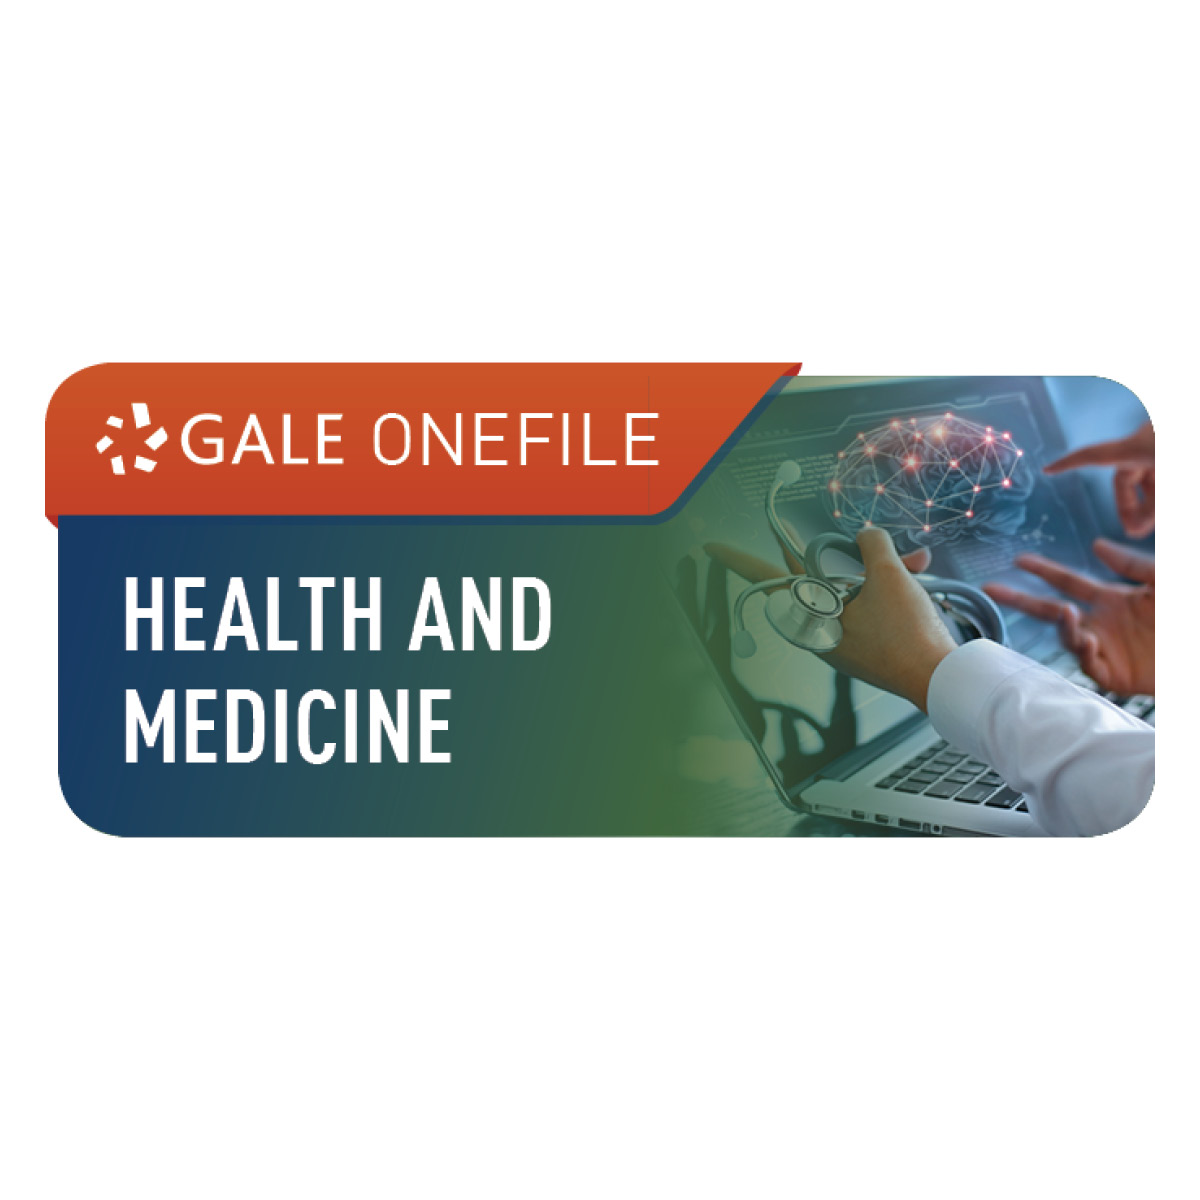 Gale OneFile Health and Medicine - resource image